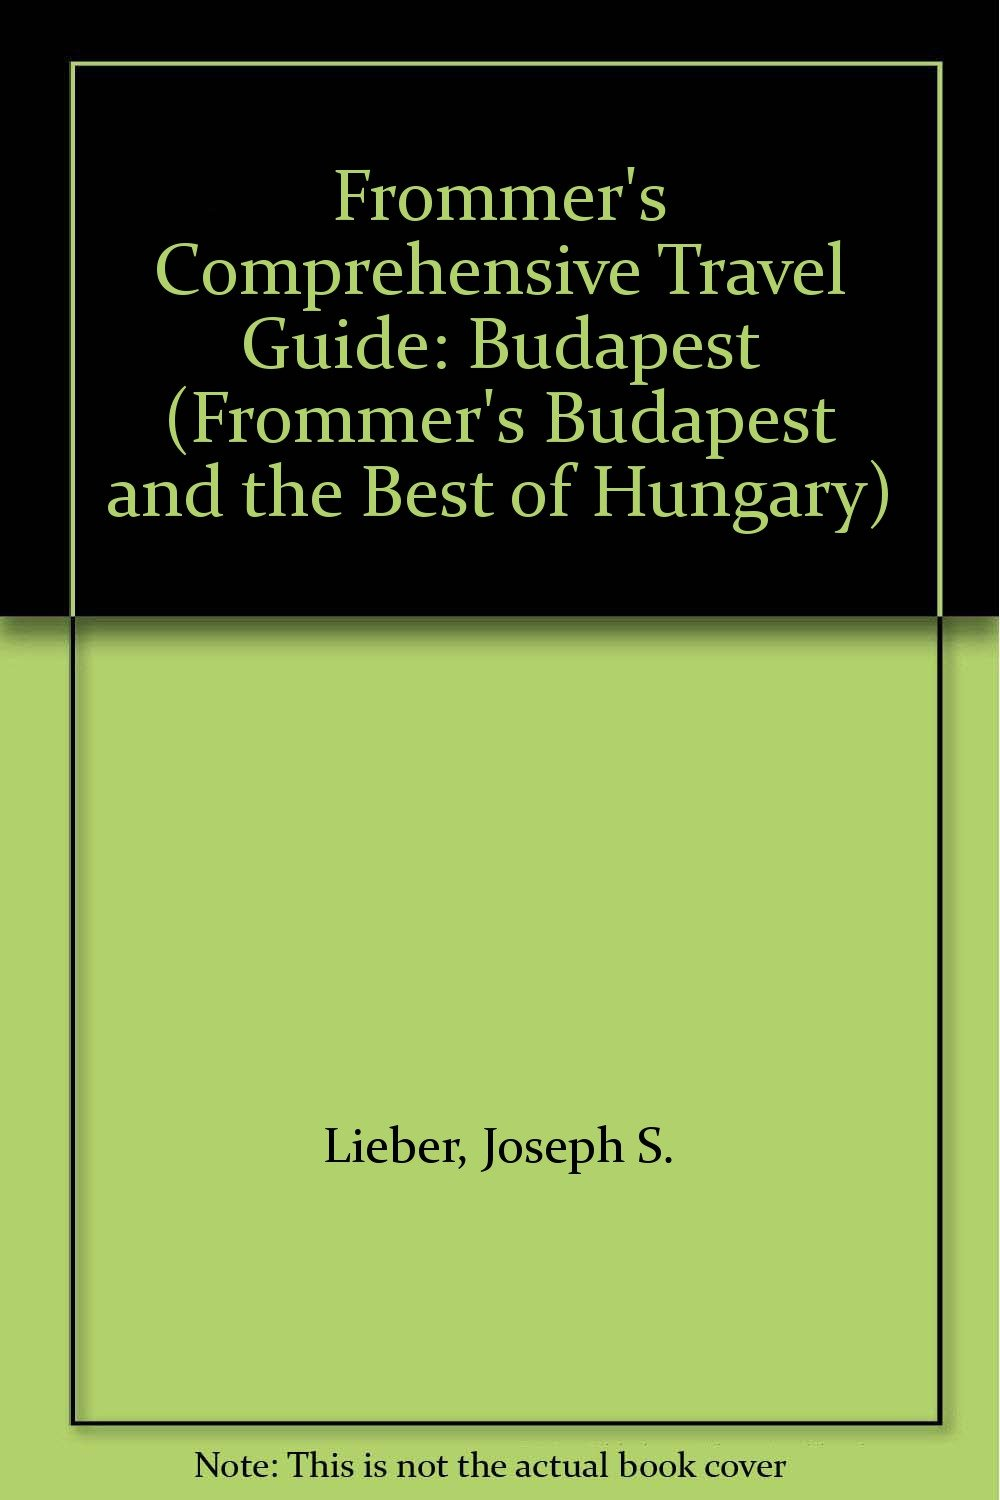 Frommer's Comprehensive Travel Guide: Budapest (FROMMER'S BUDAPEST AND THE BEST OF HUNGARY)